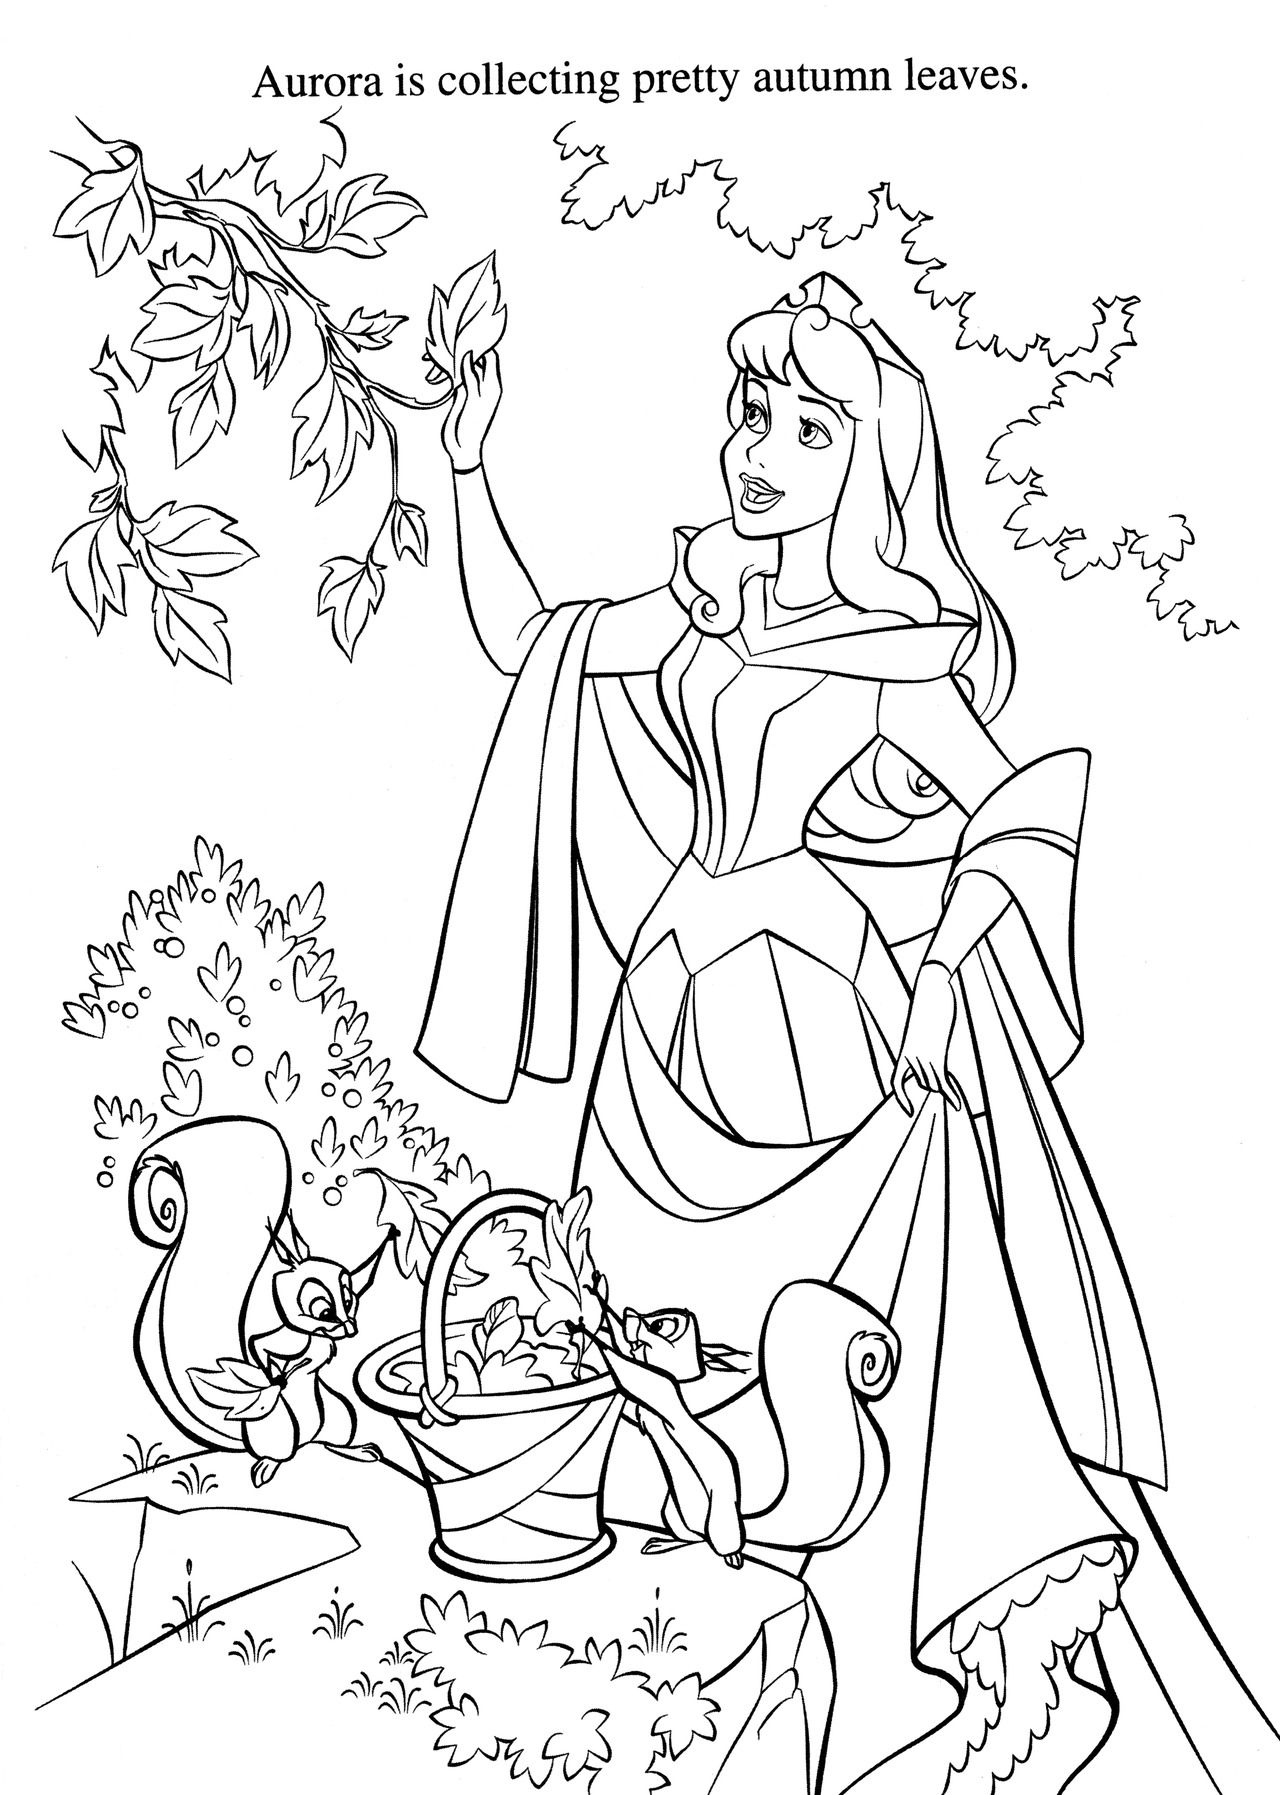 Princess aurora coloring pages games - Aurora Picking Leaves Coloring Pages